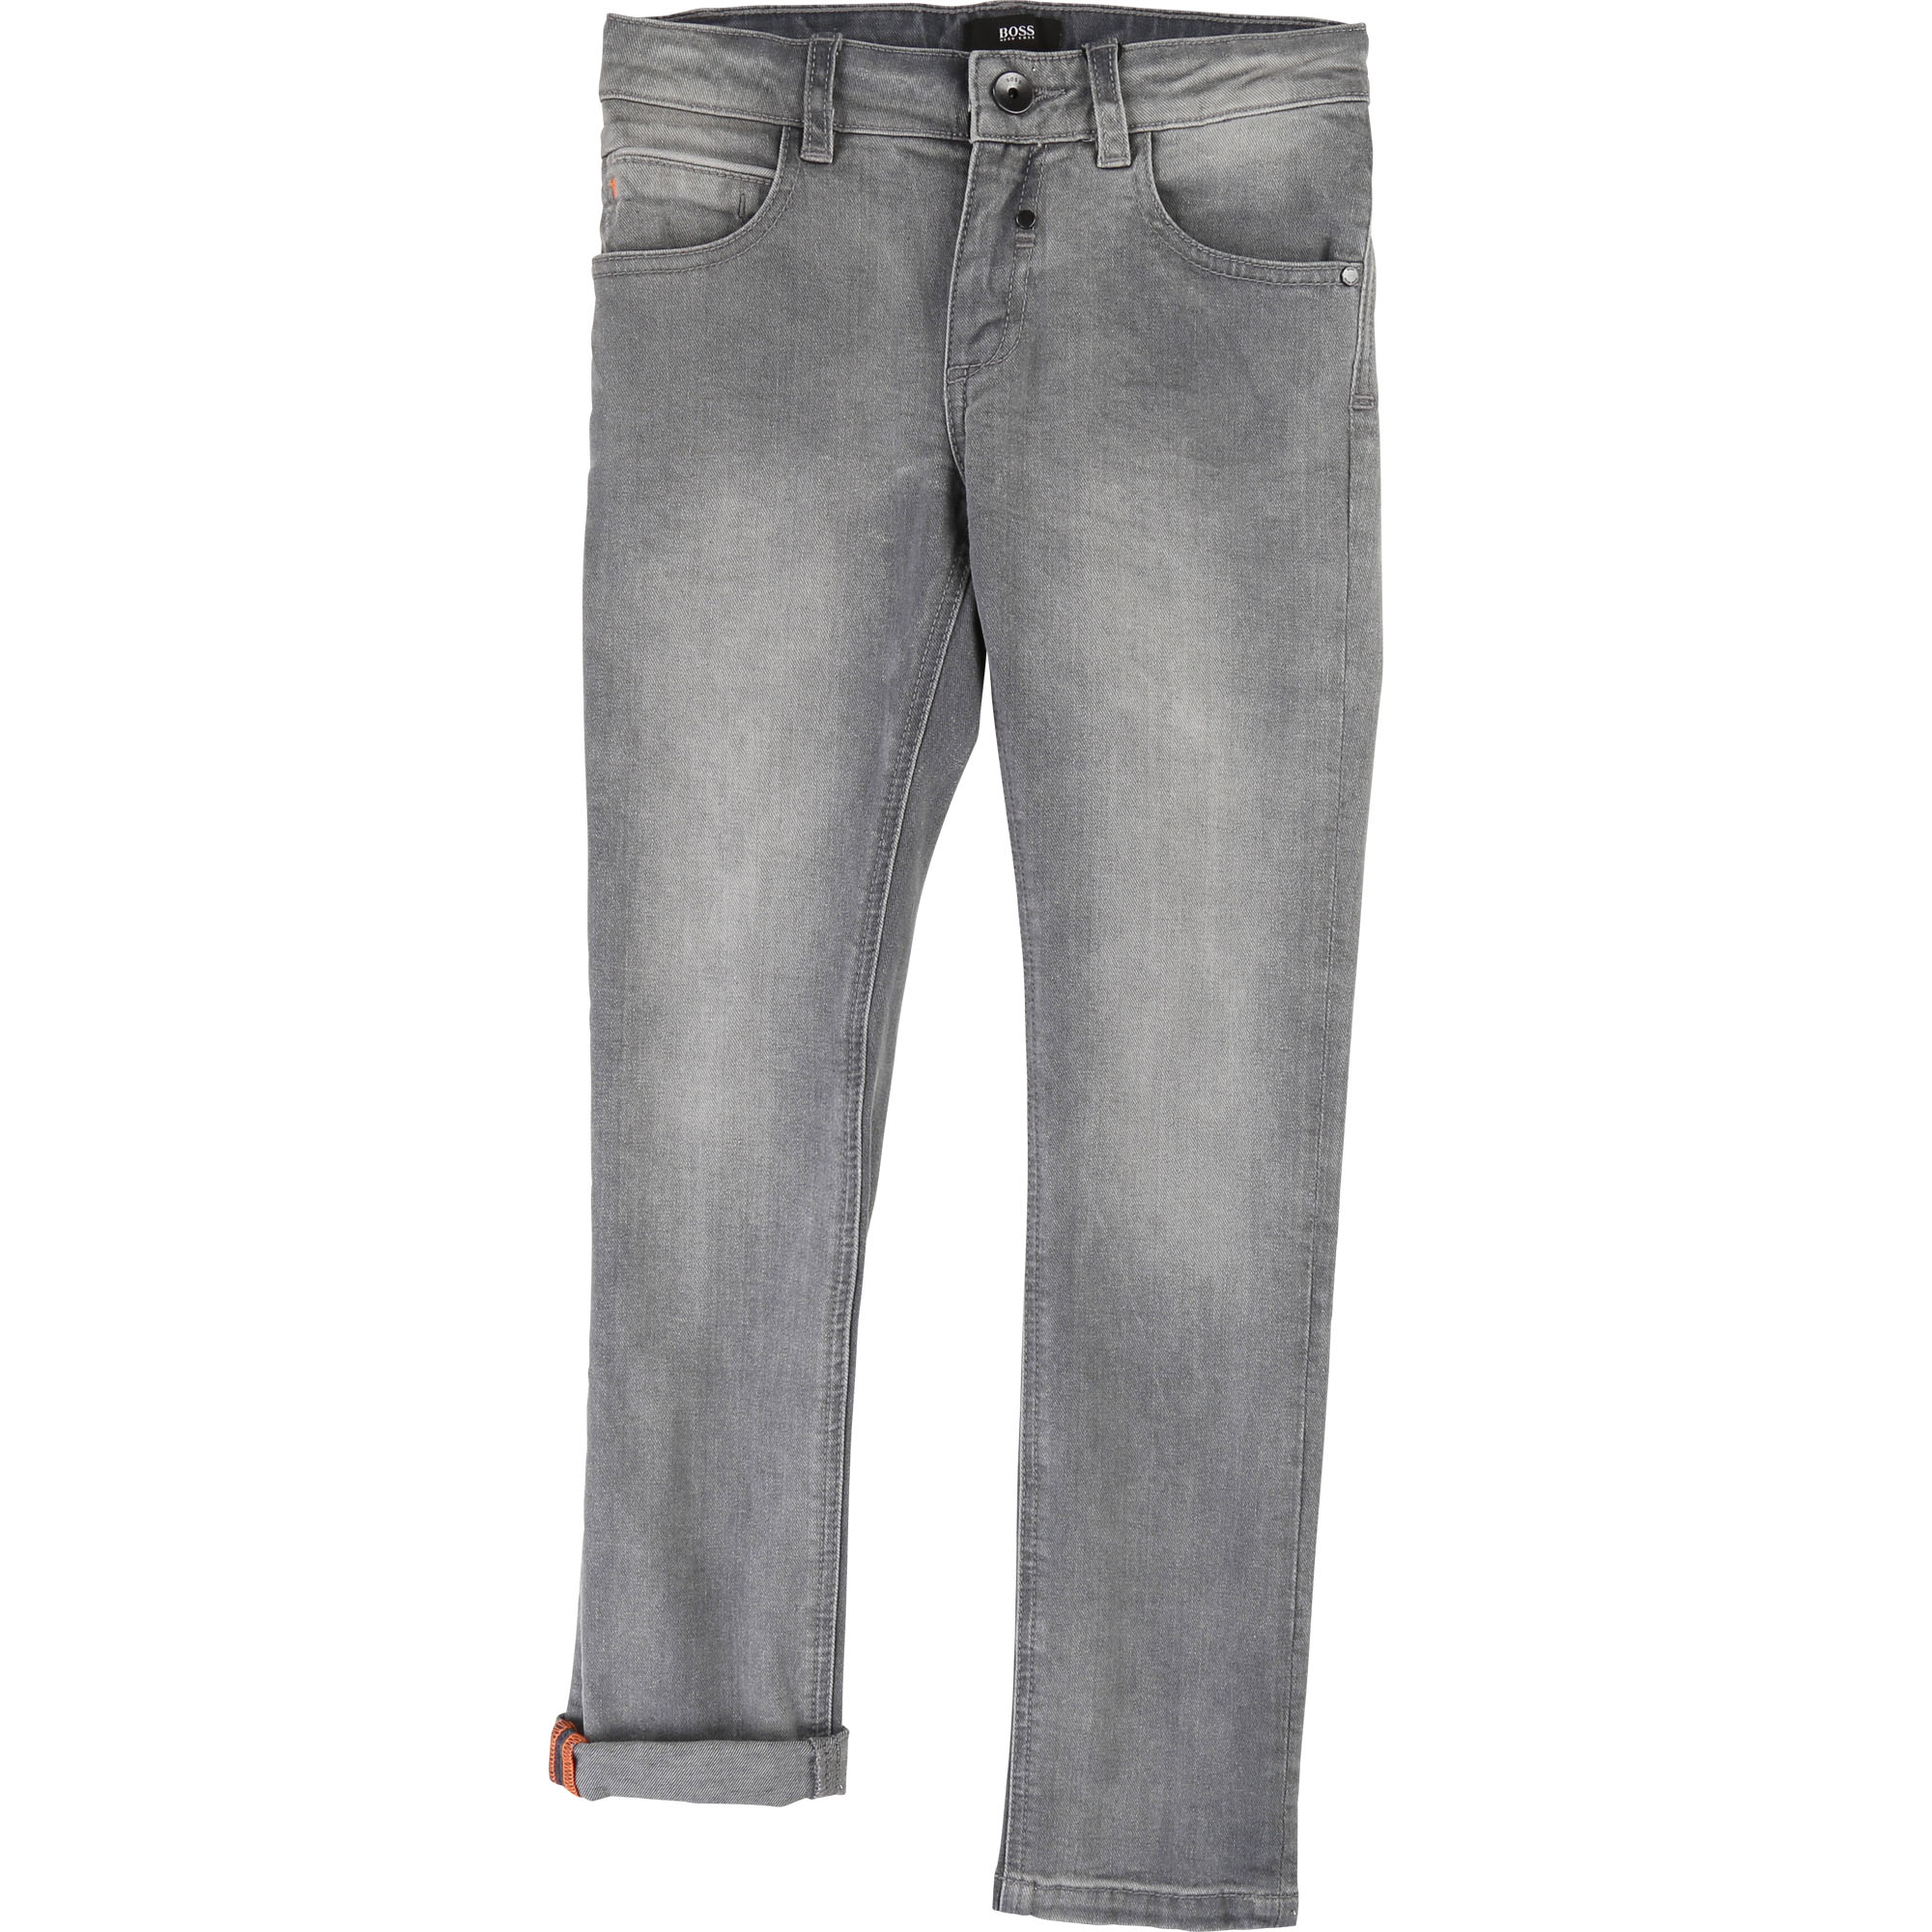 Stretch cotton skinny jeans BOSS for BOY